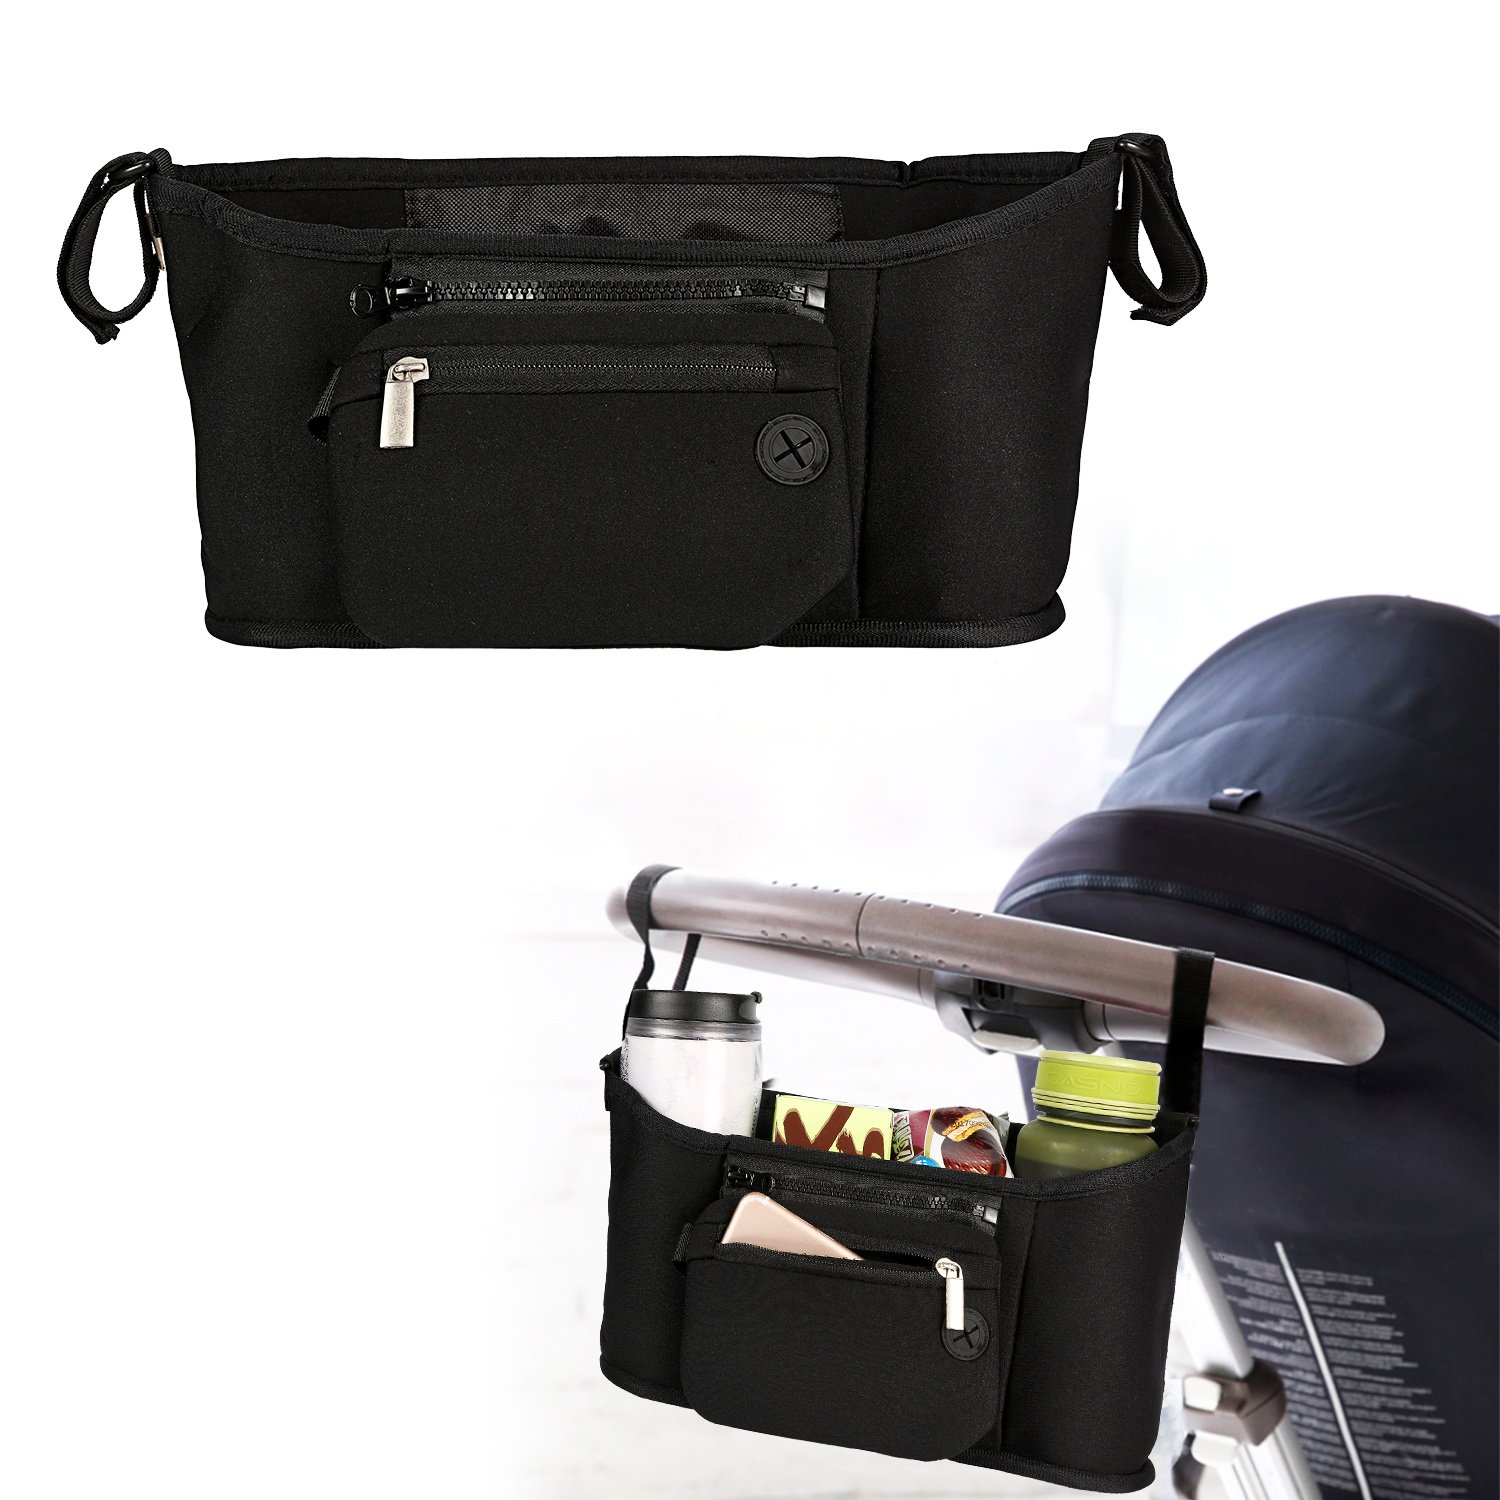 Baby Stroller Organizer Diaper Stroller Bag with 2 Carry Hooks, 3 Cup Holders,Detachable Wristlet, Stroller Accessories for Toys Milk Bottles Diapers and Wipes (Black)